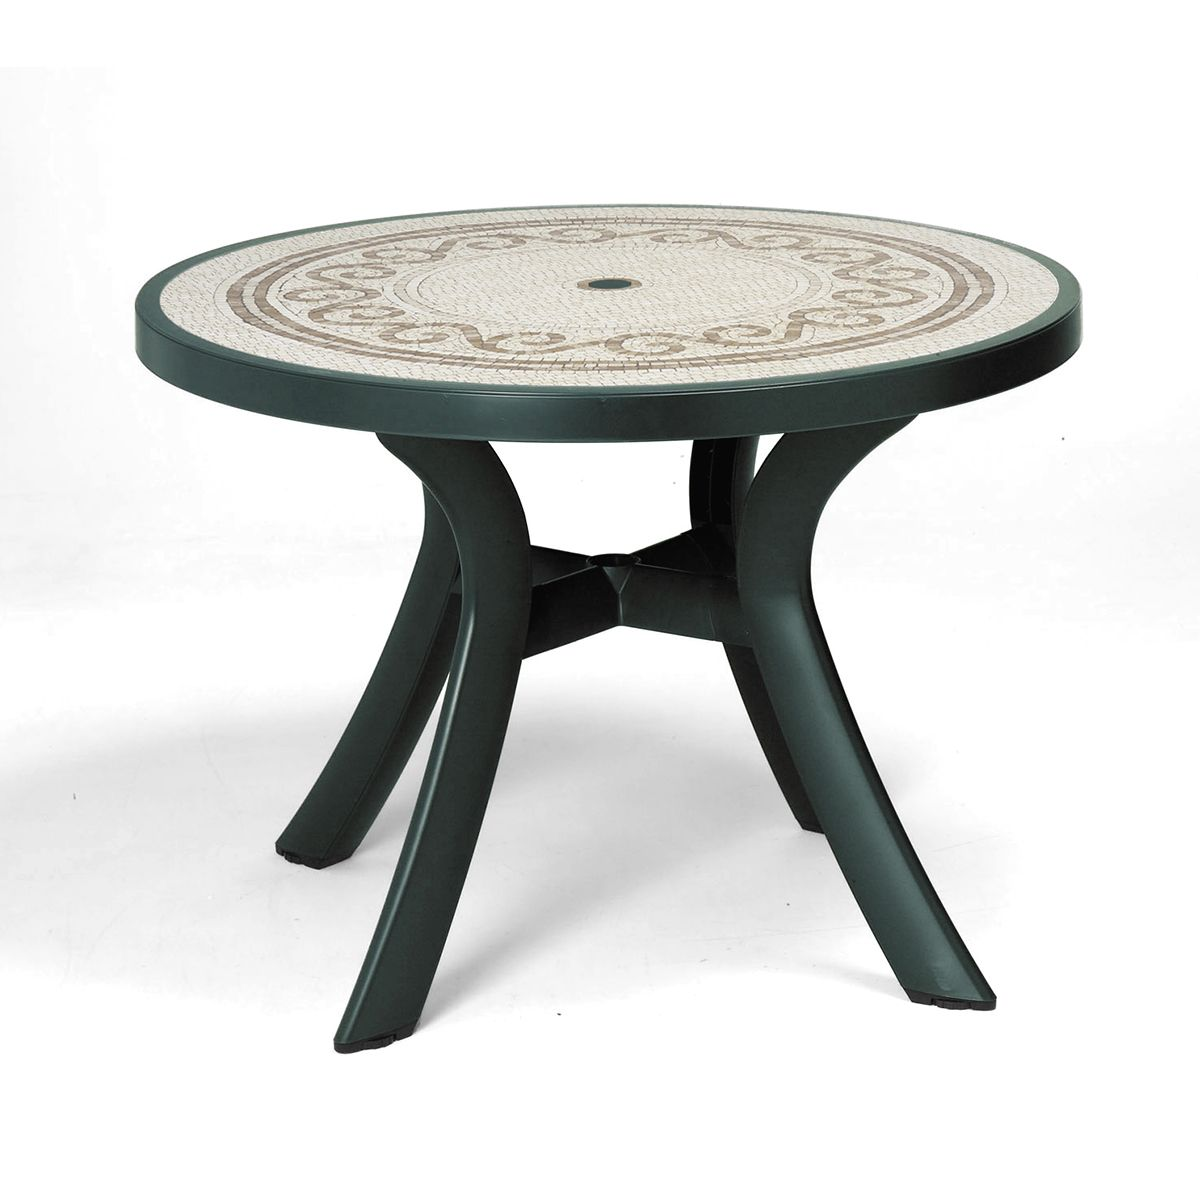 table de jardin ronde zendart design. Black Bedroom Furniture Sets. Home Design Ideas